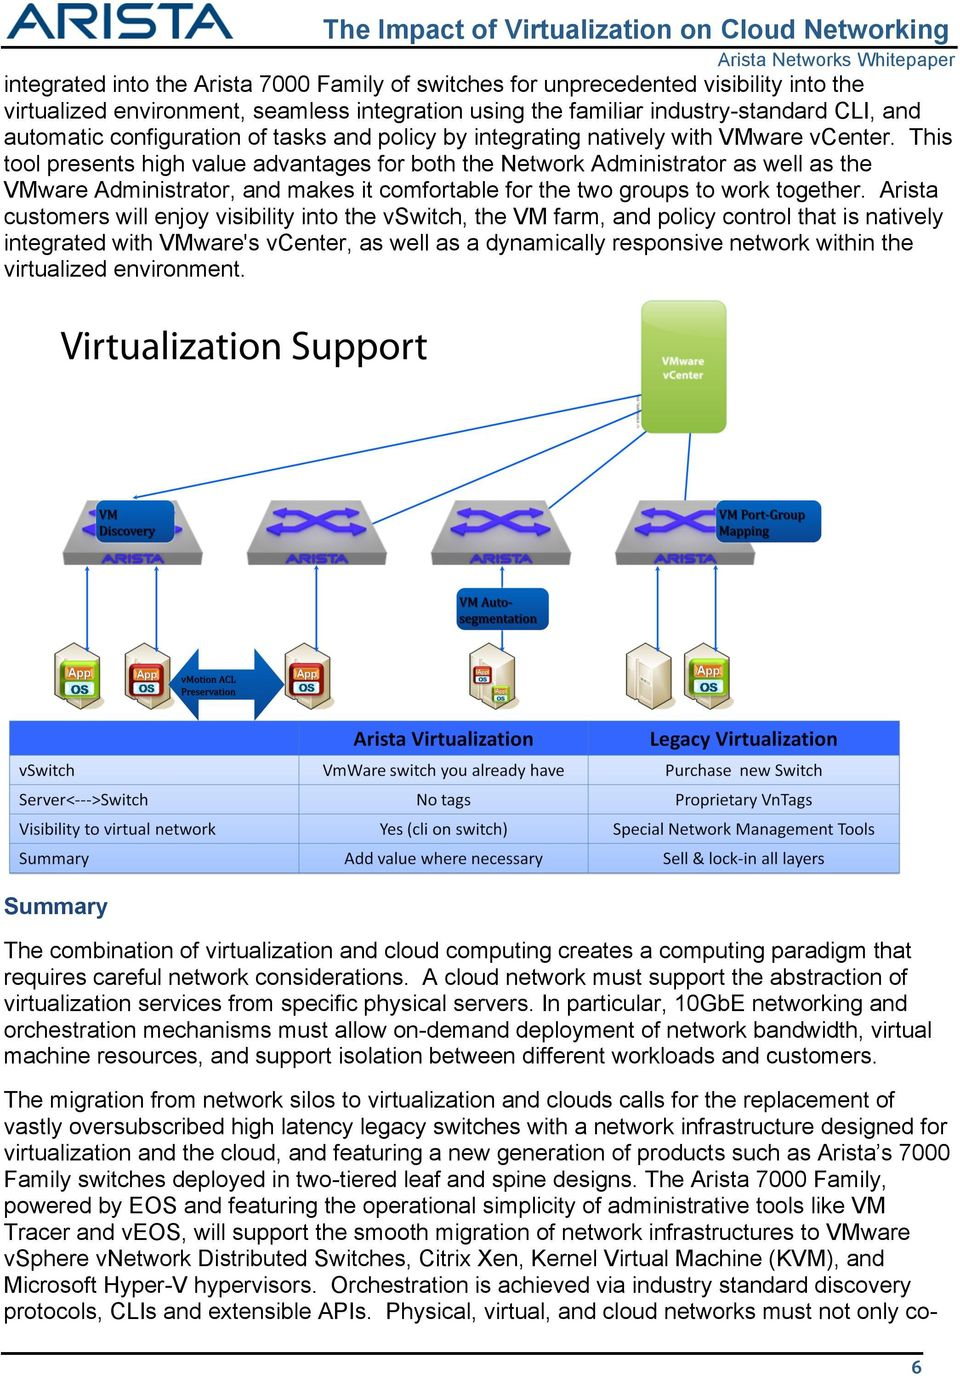 This tool presents high value advantages for both the Network Administrator as well as the VMware Administrator, and makes it comfortable for the two groups to work together.